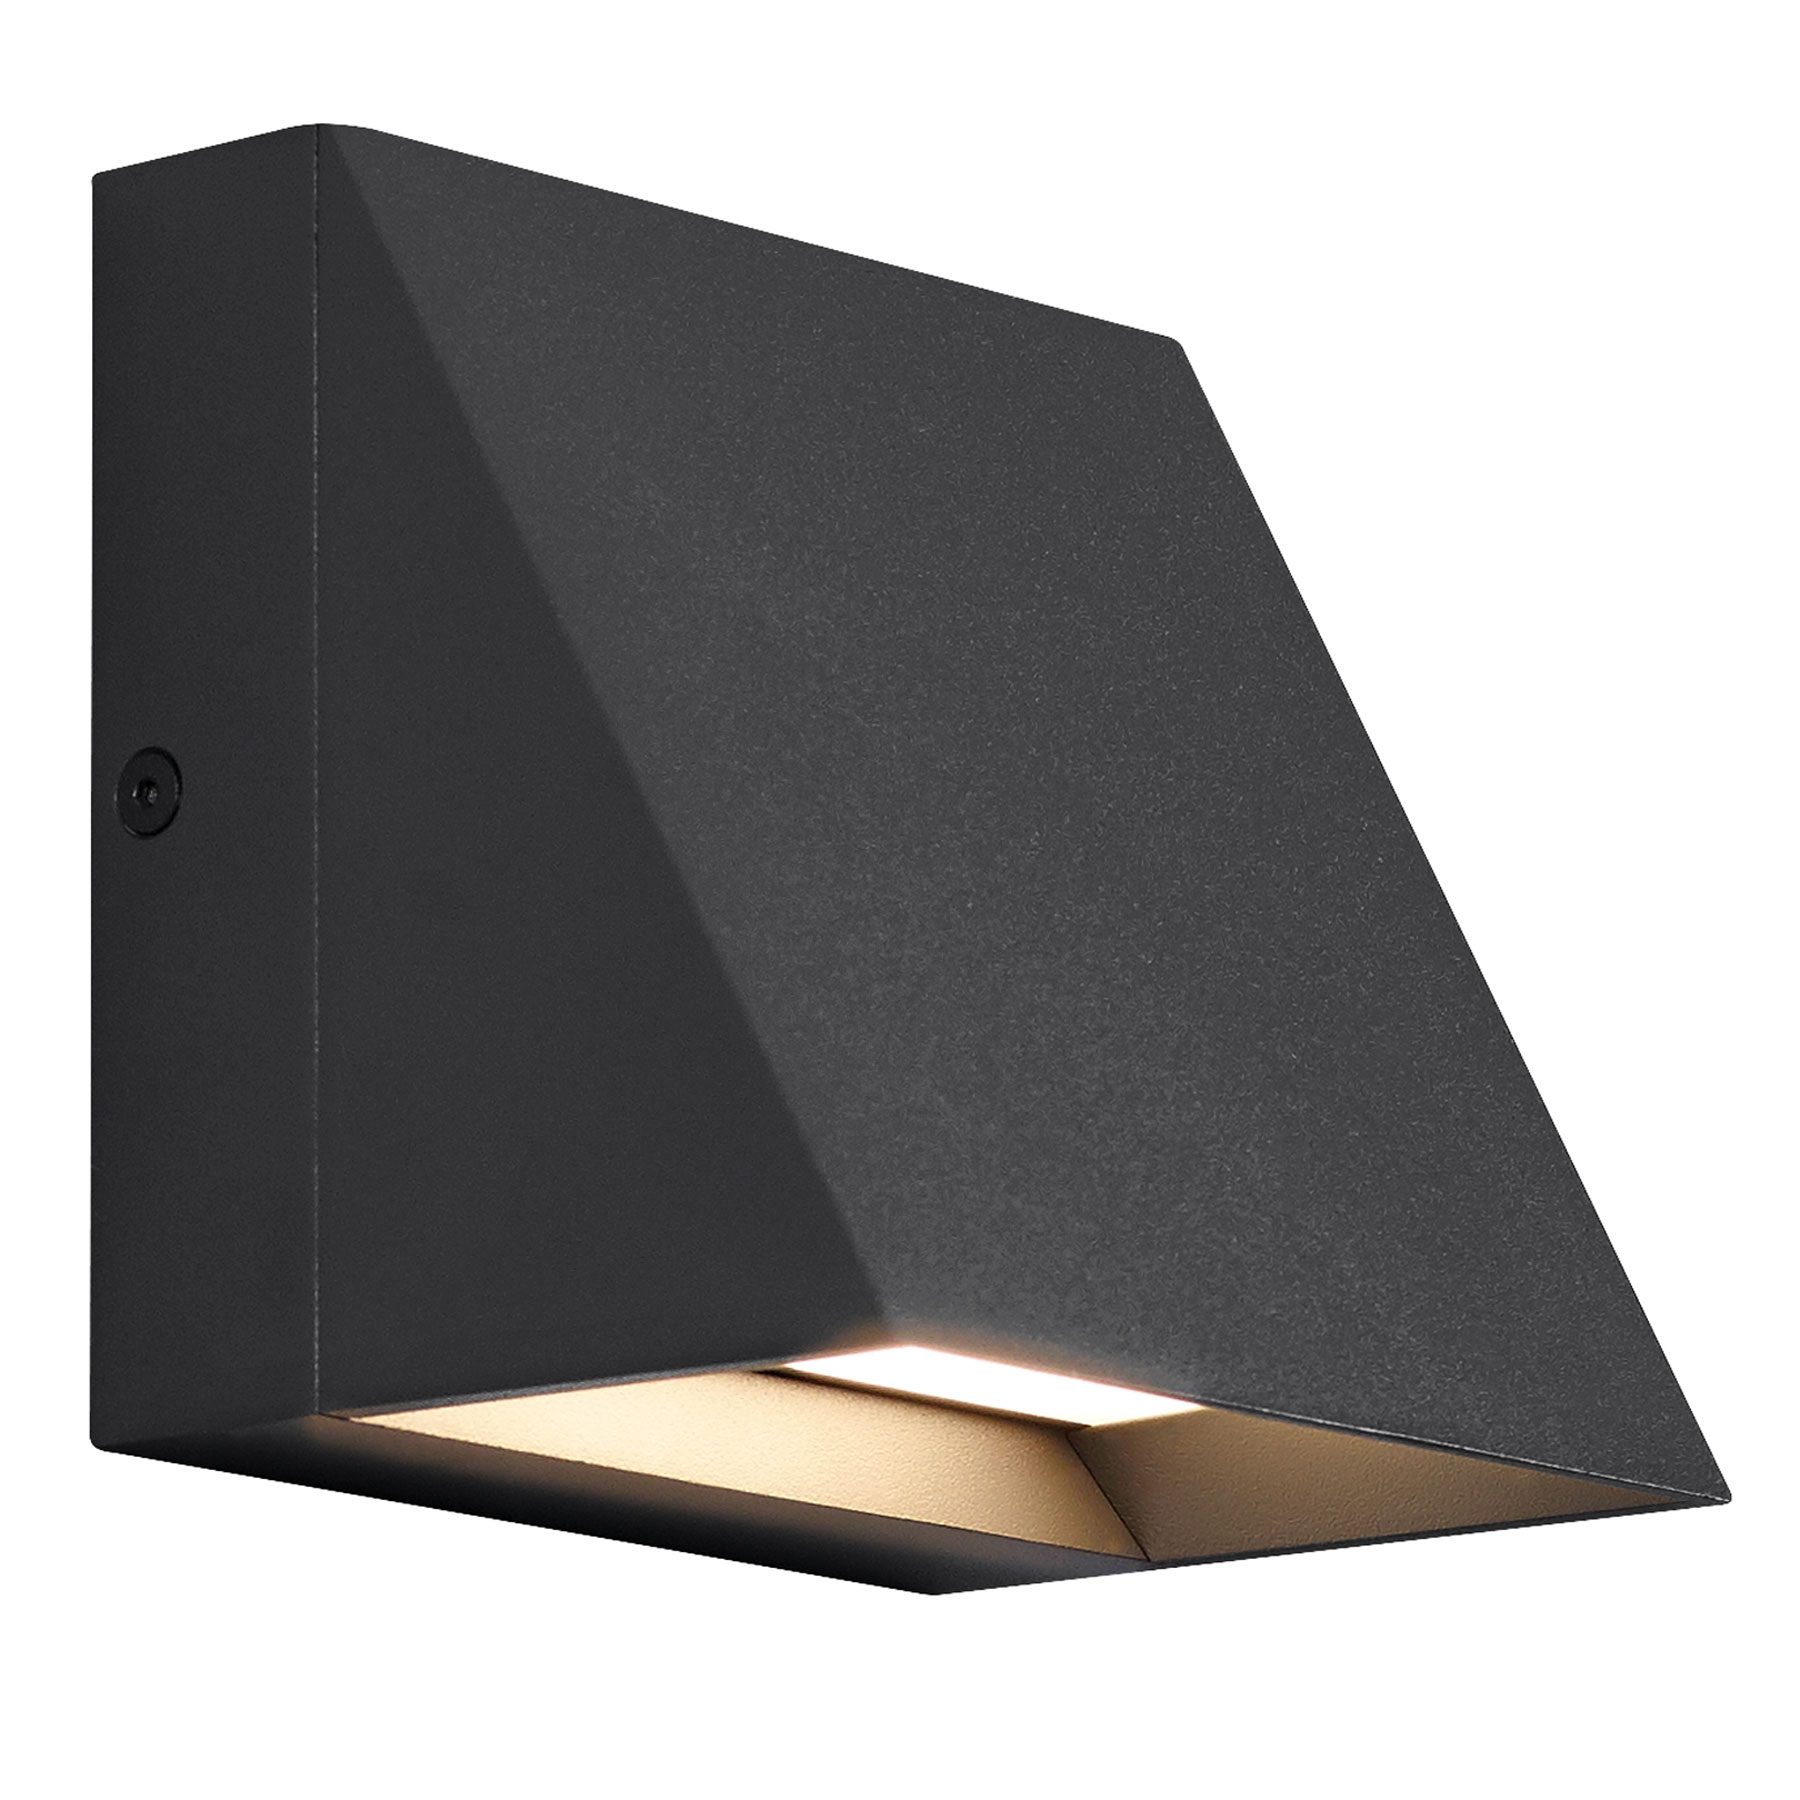 Pitch Outdoor Wall Light By Tech Lighting | 700WSPITSB LED830